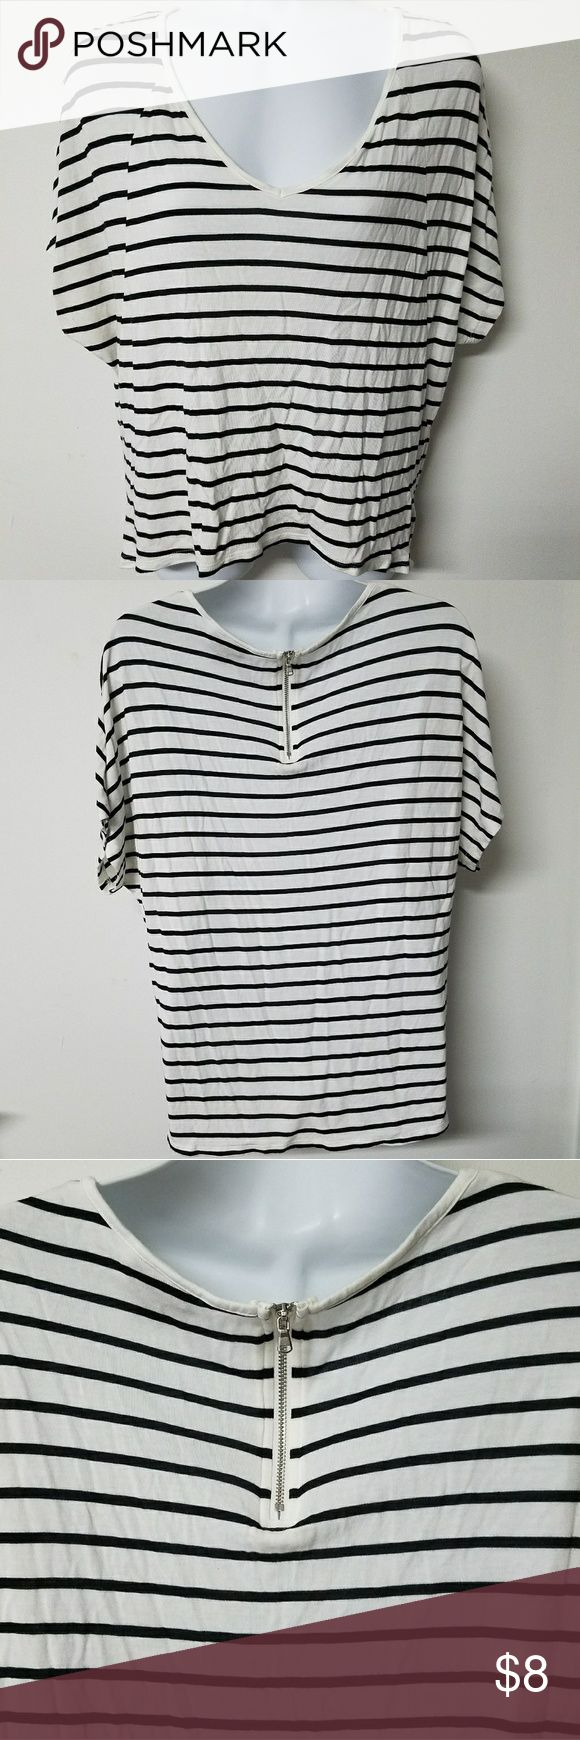 Mossimo black and white juniors small shirt GUC Up for sale is a preowned Mossimo by Target juniors small shirt. It is an off white color with black stripes and a zipper in back. It does have a small stain on the inside of the shirt near the zipper, which is seen in the last picture. It is also faint, so not too noticeable. It is in great condition, with lots of wear left.   Thanks for looking and feel free to make an offer! Ask any questions you may have. 💗 Mossimo Supply Co. Tops